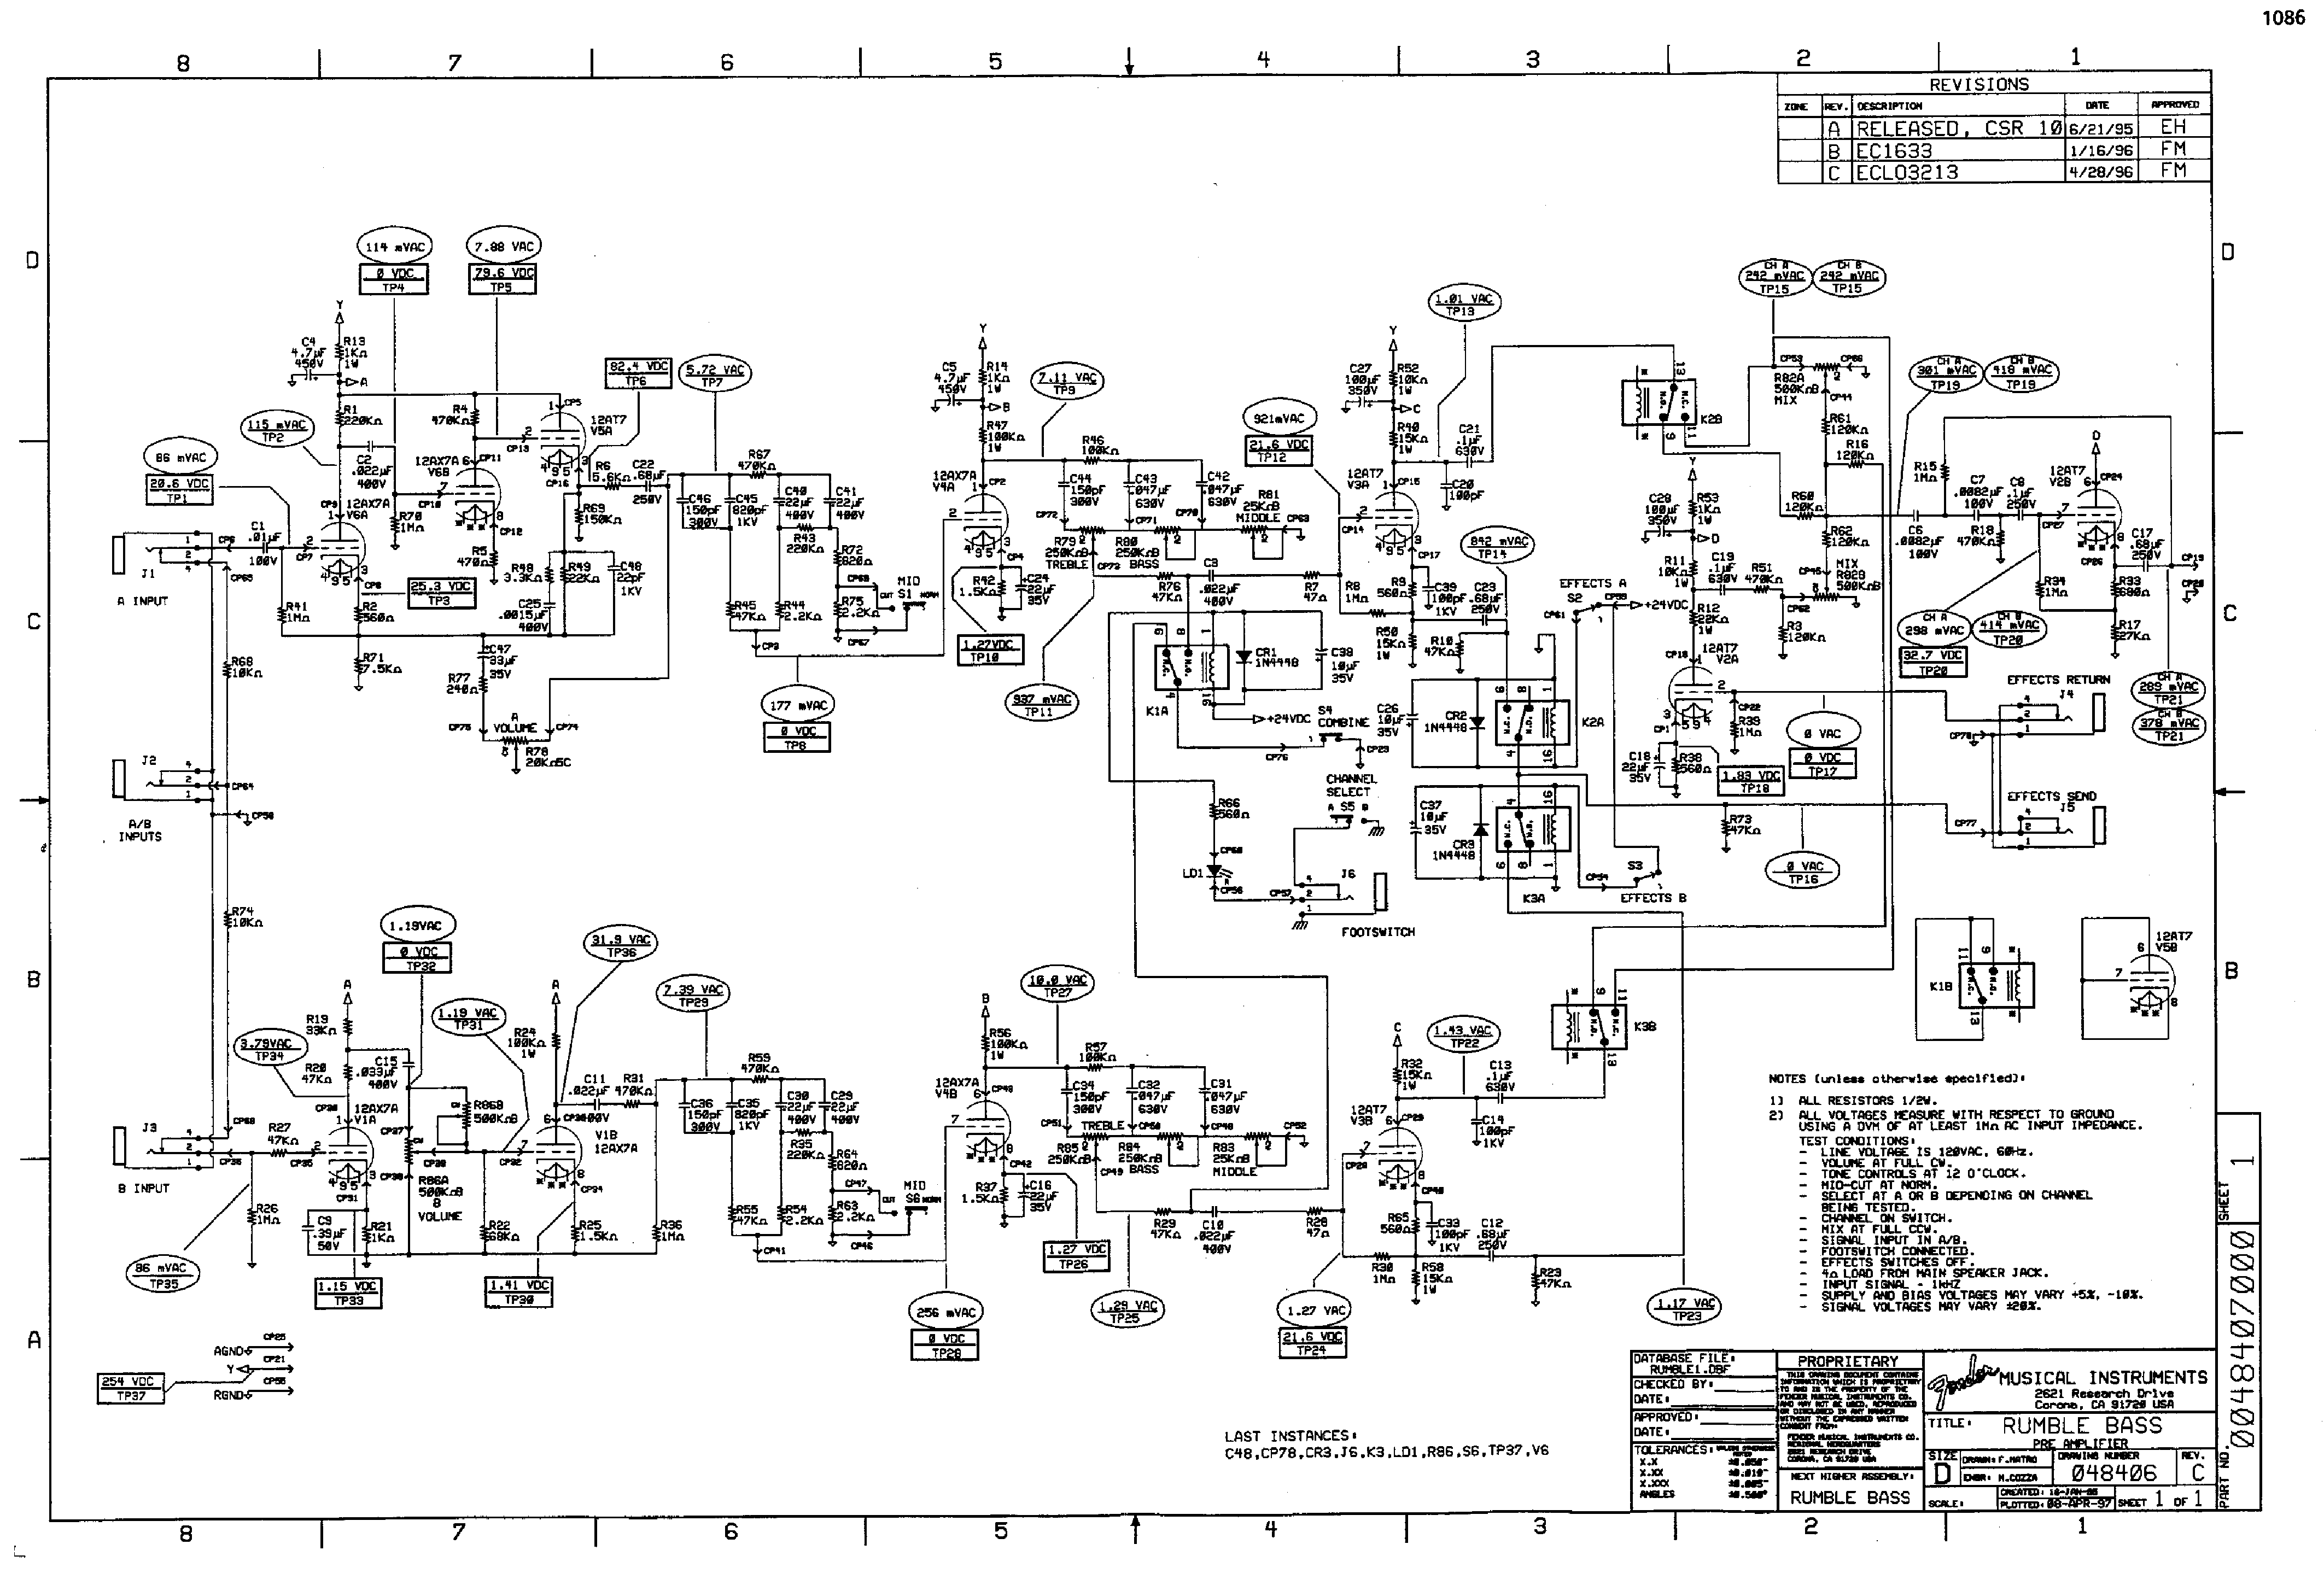 fender s 1 switching diagram